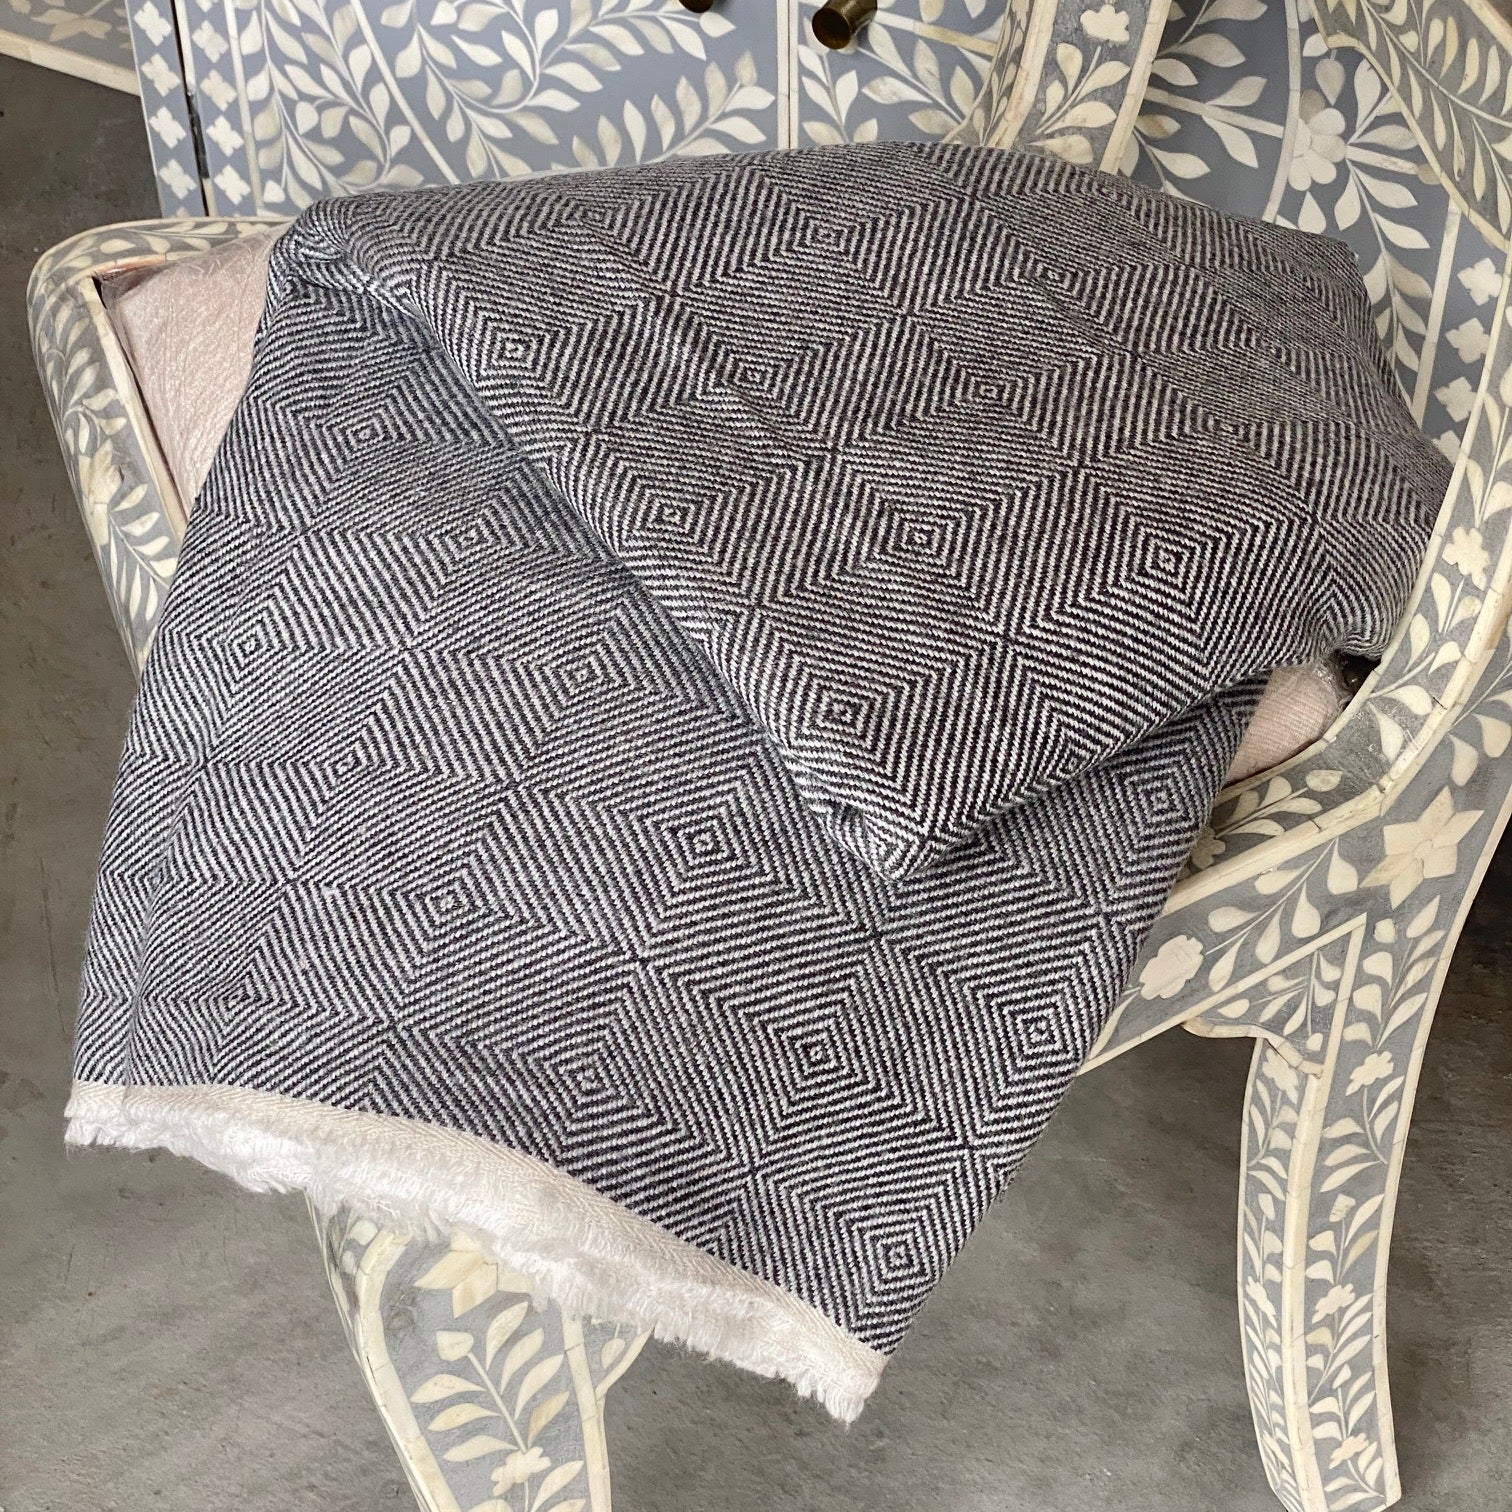 Cashmere Throw - Black Large Diamond